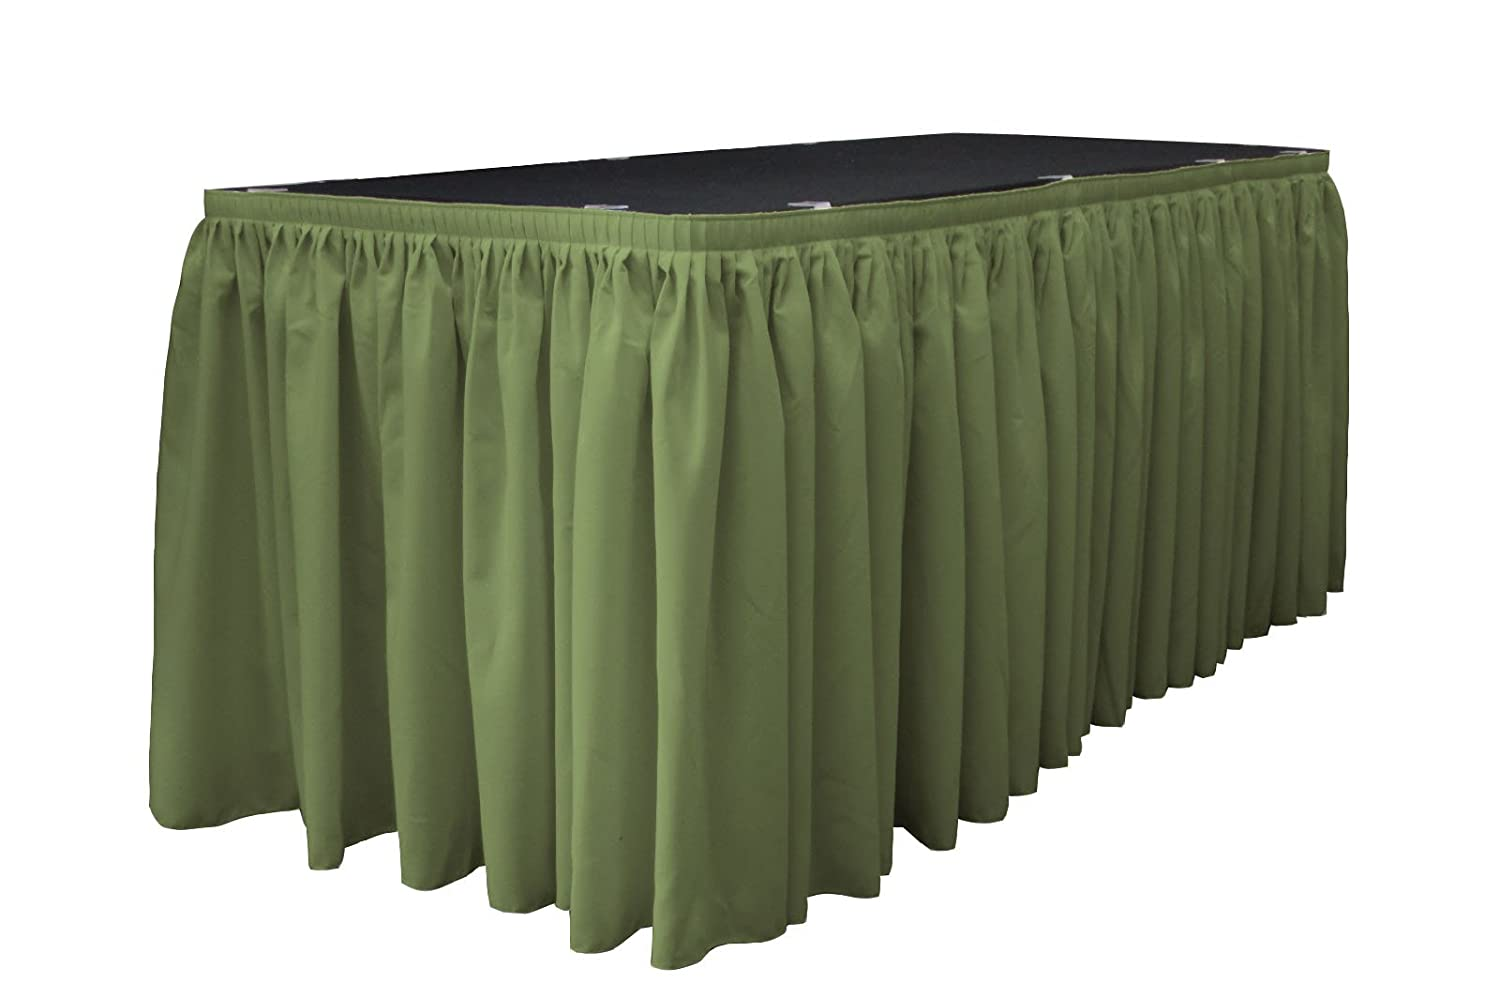 LA Linen Polyester Poplin Pleated Table Skirt with 15 Large Clips Navy Blue SKT21x29pop+15Lclps/_NavyP72 21-Feet by 29-Inch